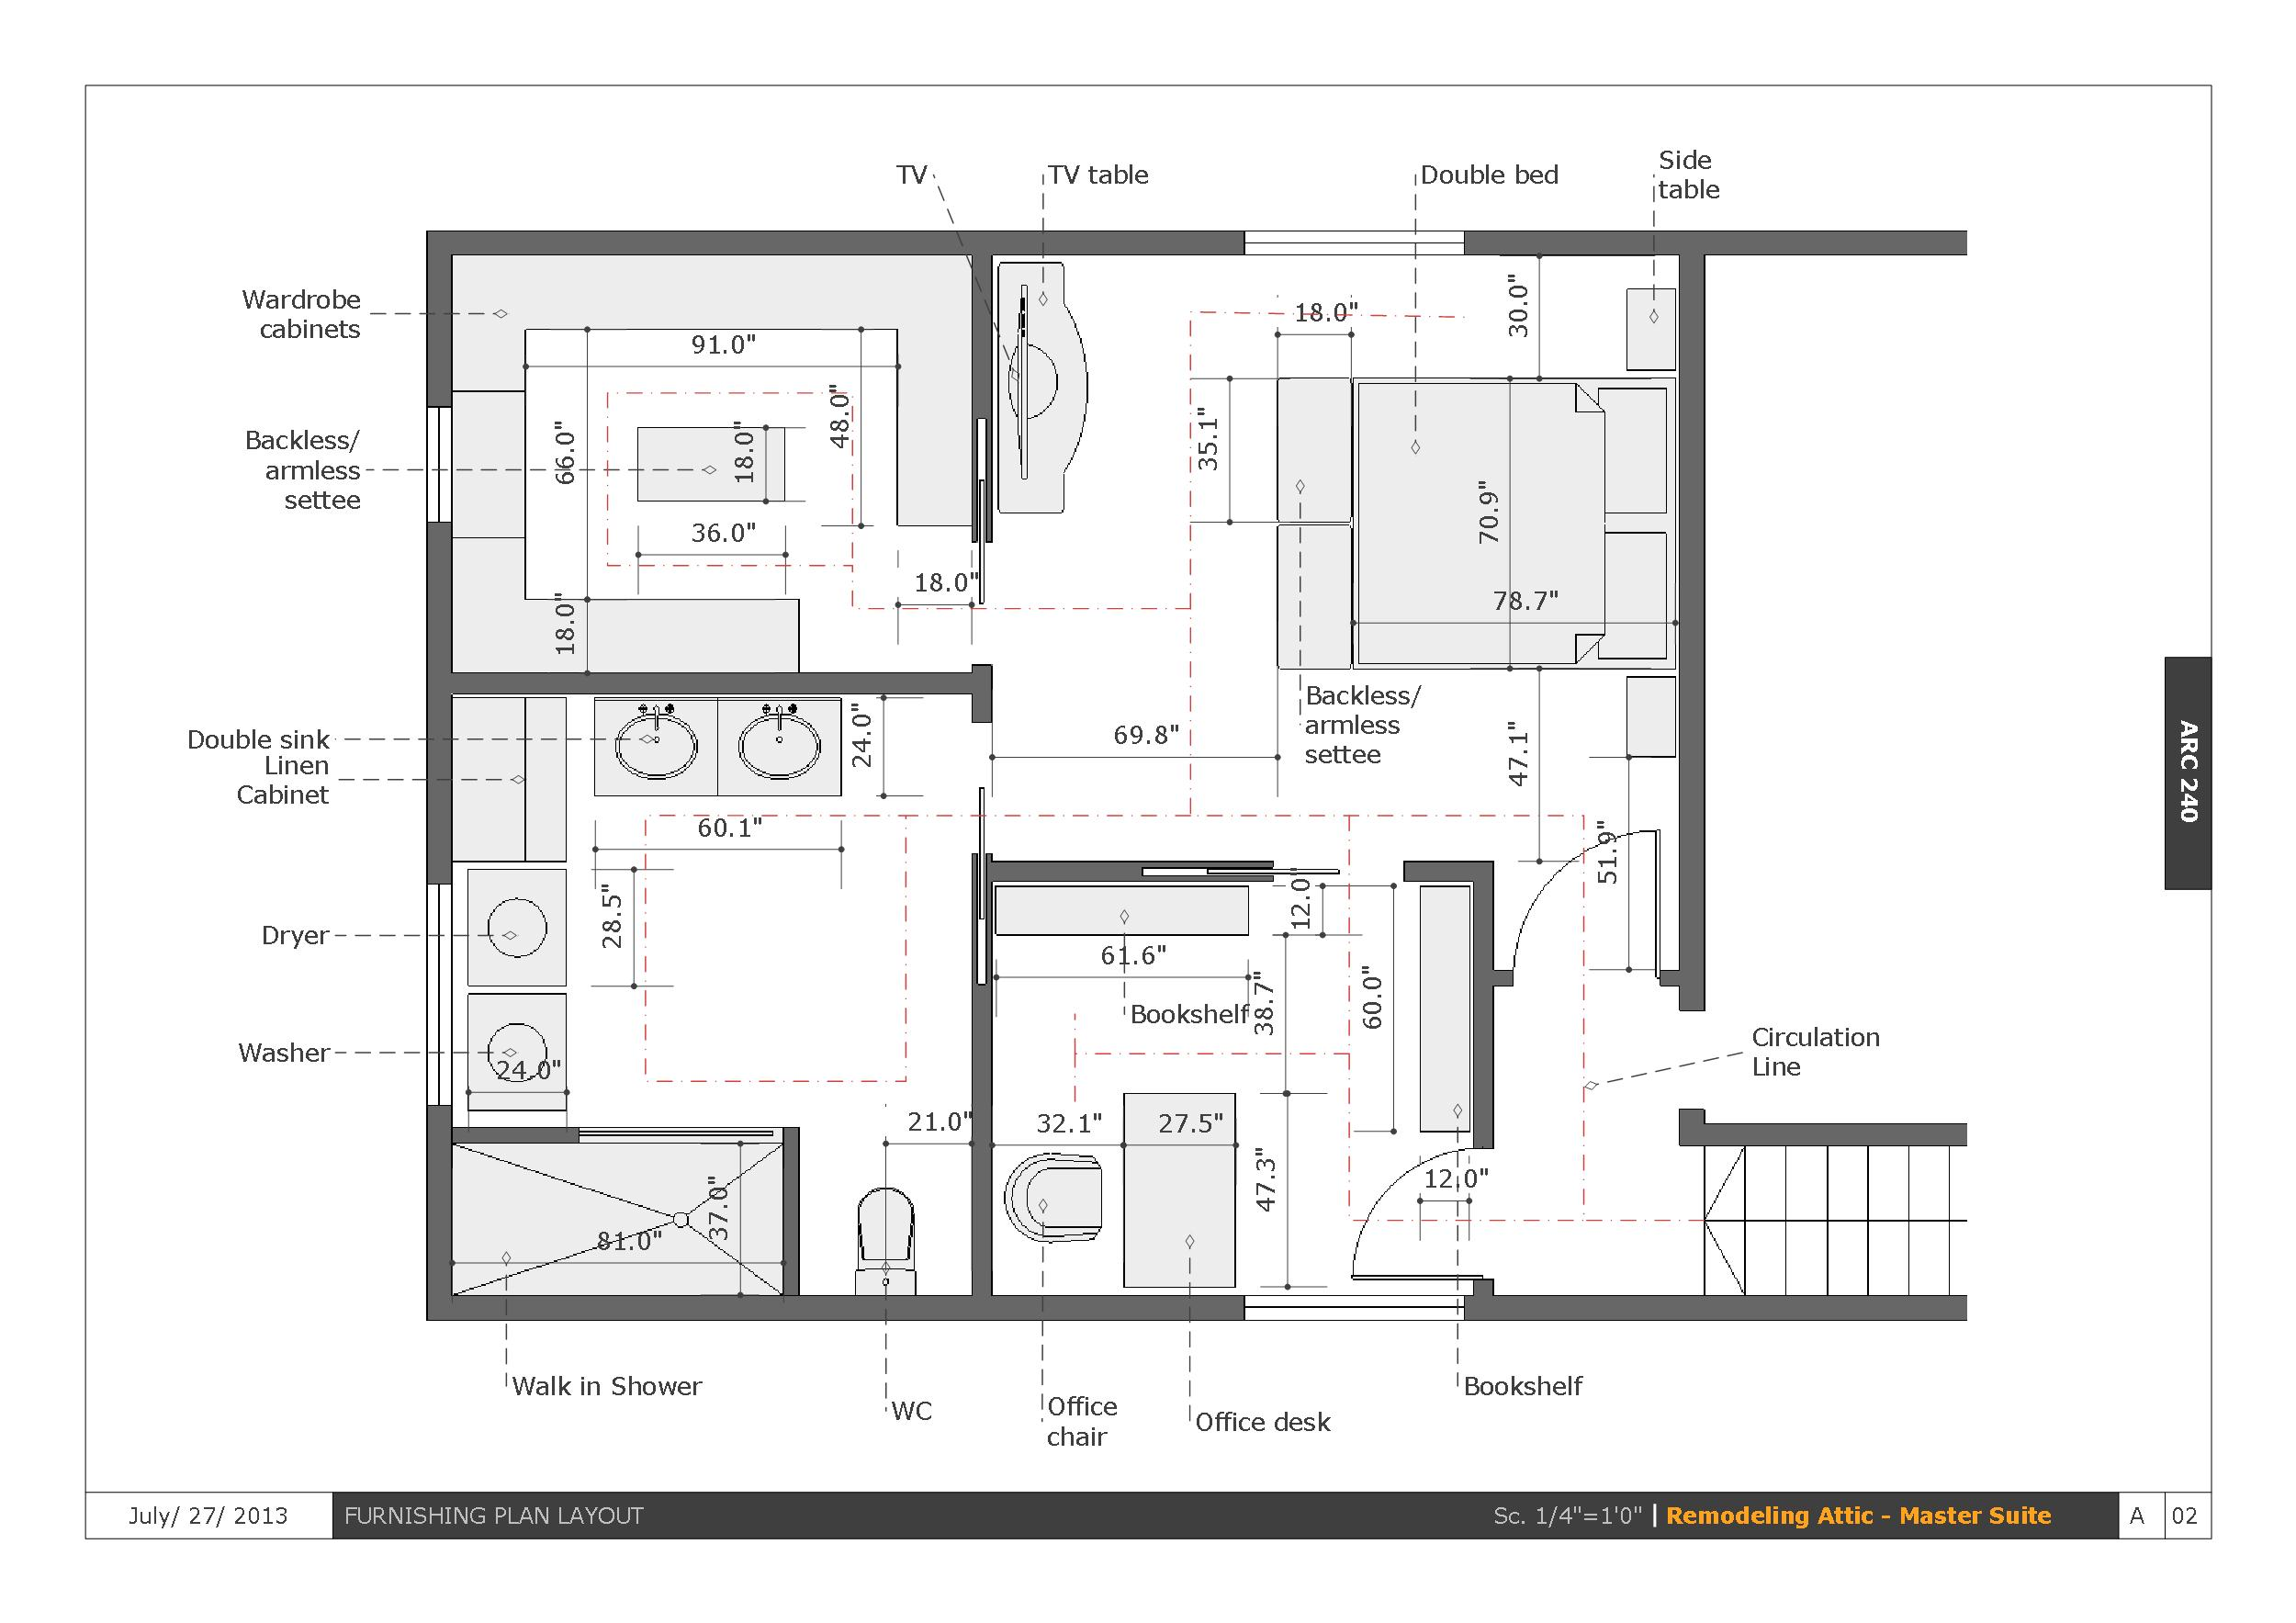 Viewdesignerproject projectattic conversion designed by edlira koleci oku - Master bedroom layouts ...